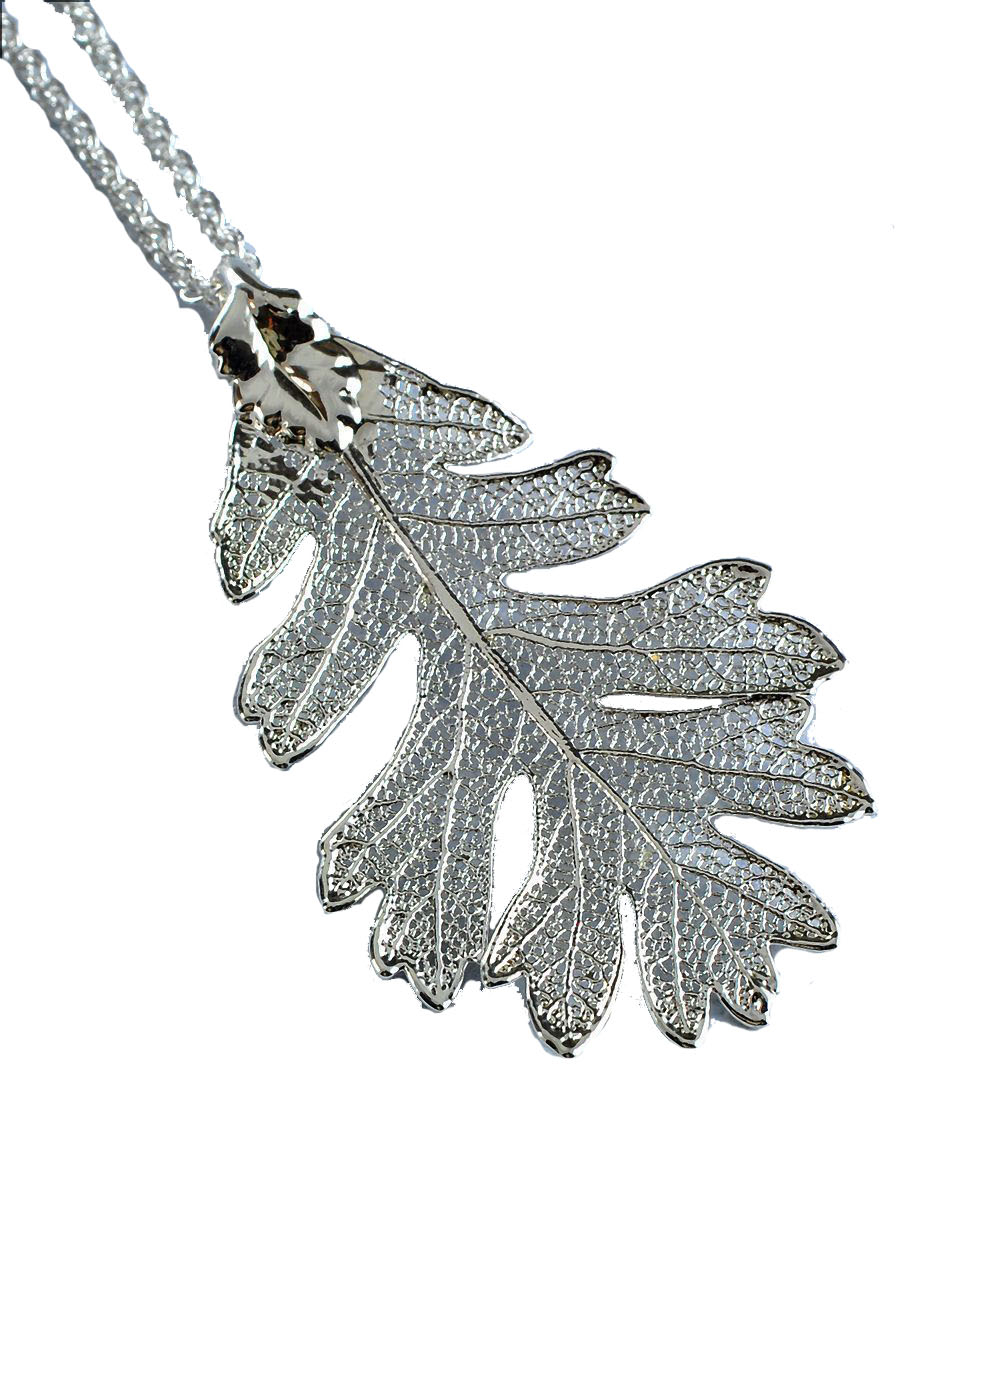 Oak Leaf In Silver – Real Leaf Pendant For Most Current Oak Leaf Necklaces (Gallery 24 of 25)